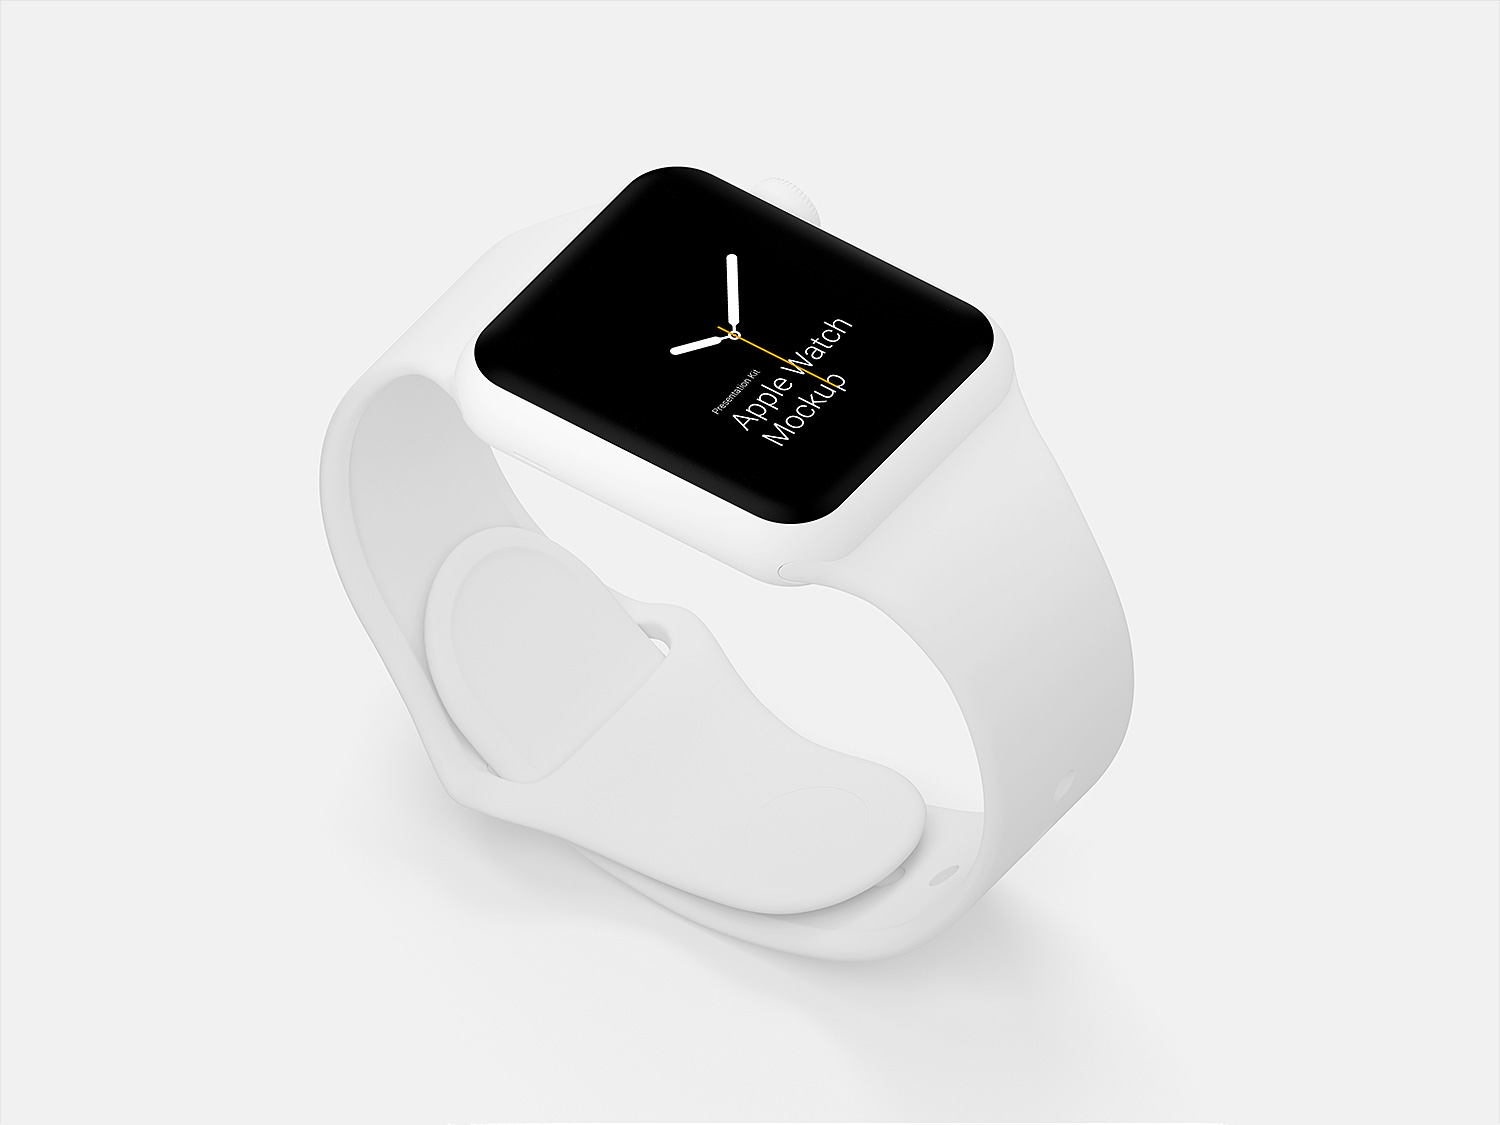 Apple-Watch-Mockups-Free-04